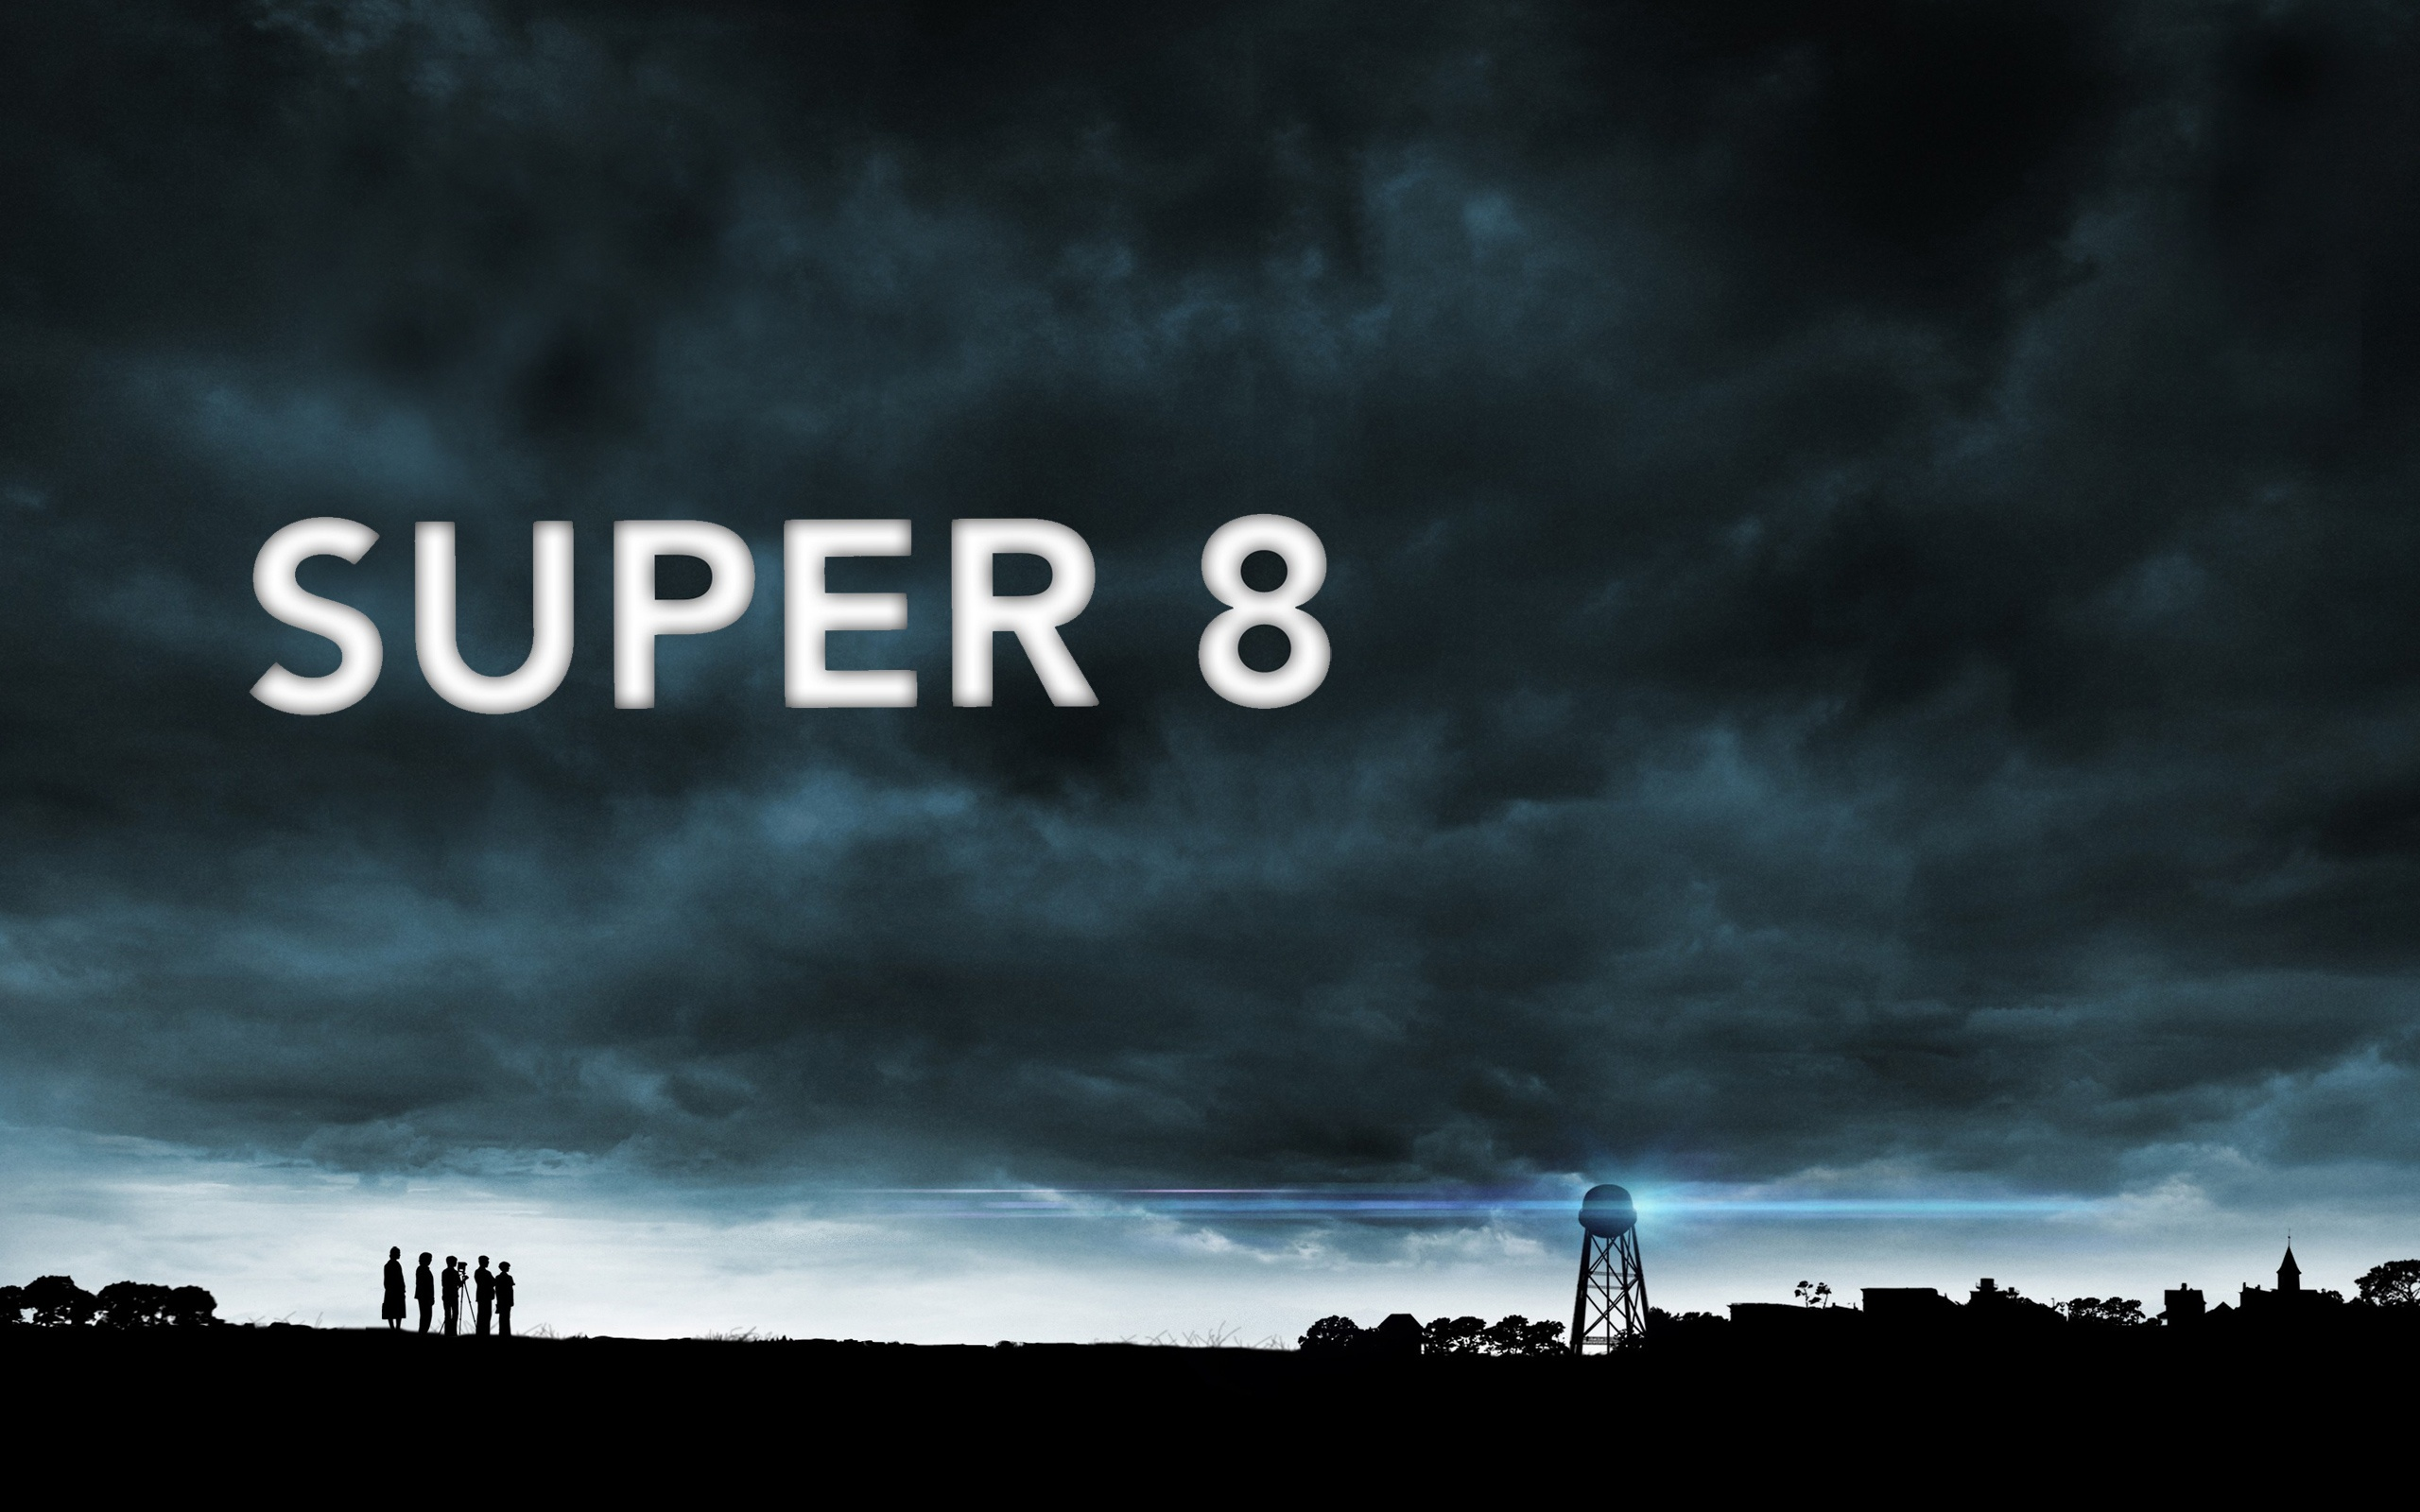 Super 8 Background